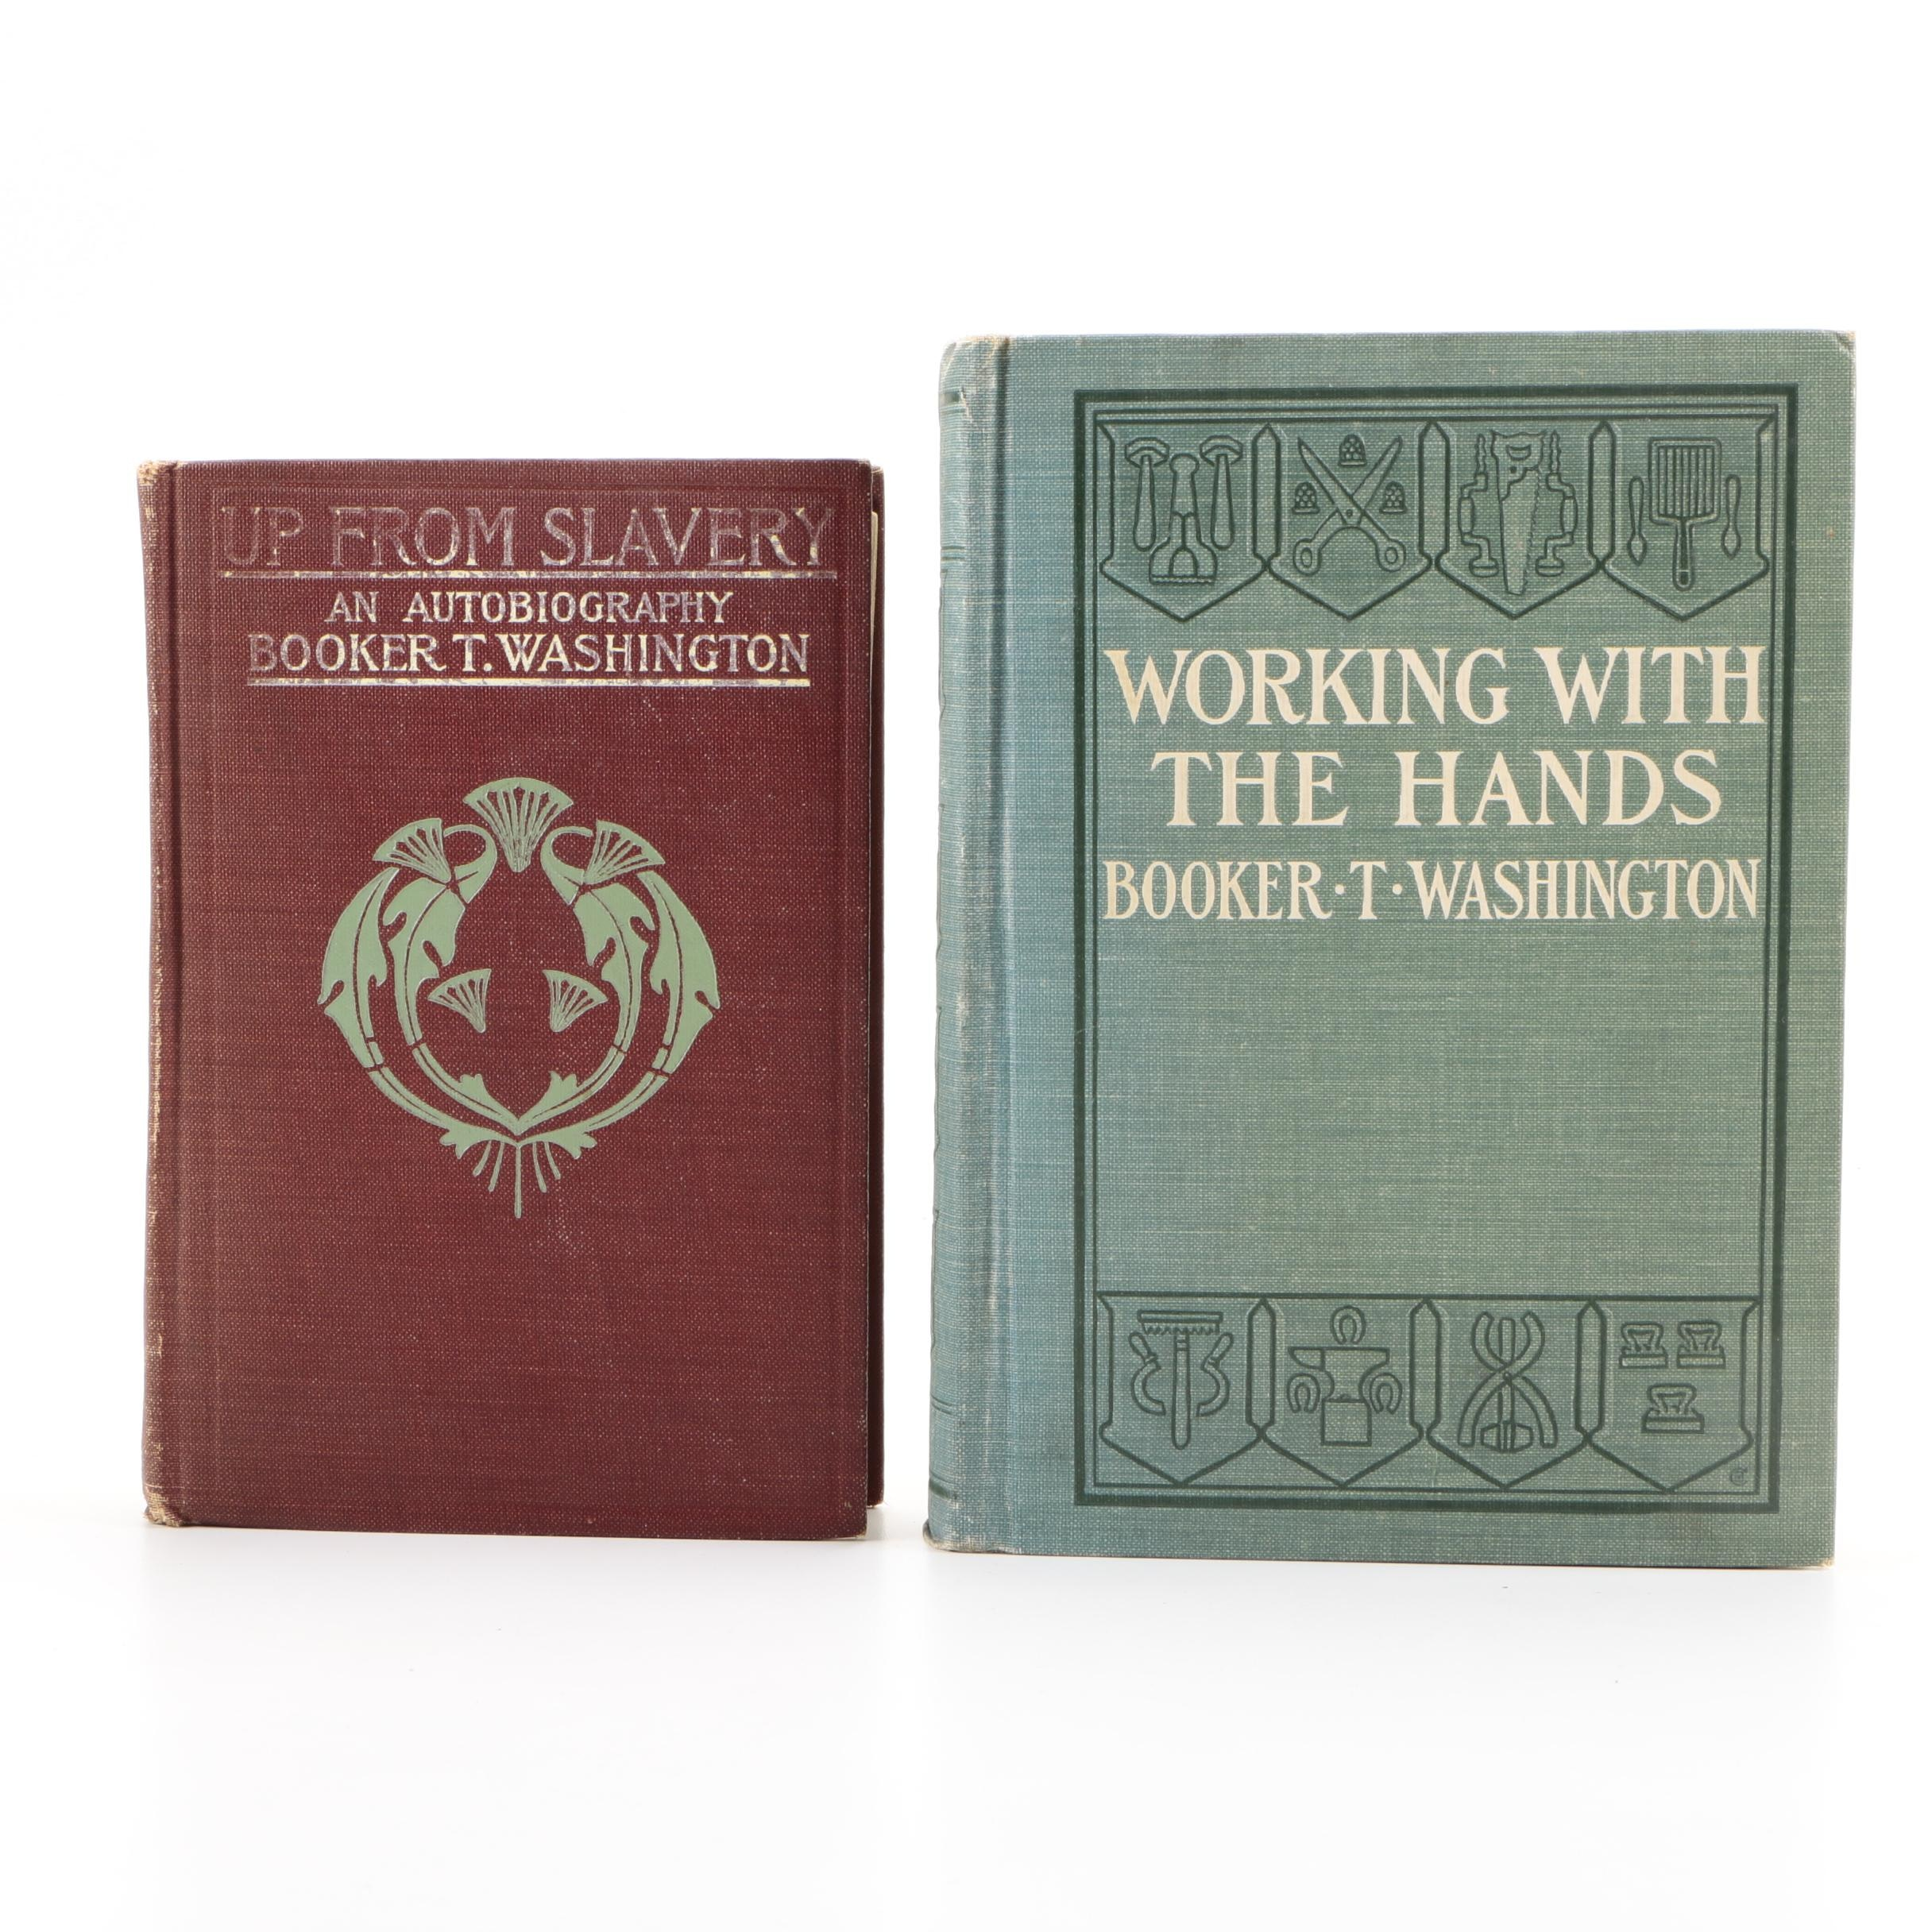 Collection of Antique Hardcover Books by Booker T. Washington